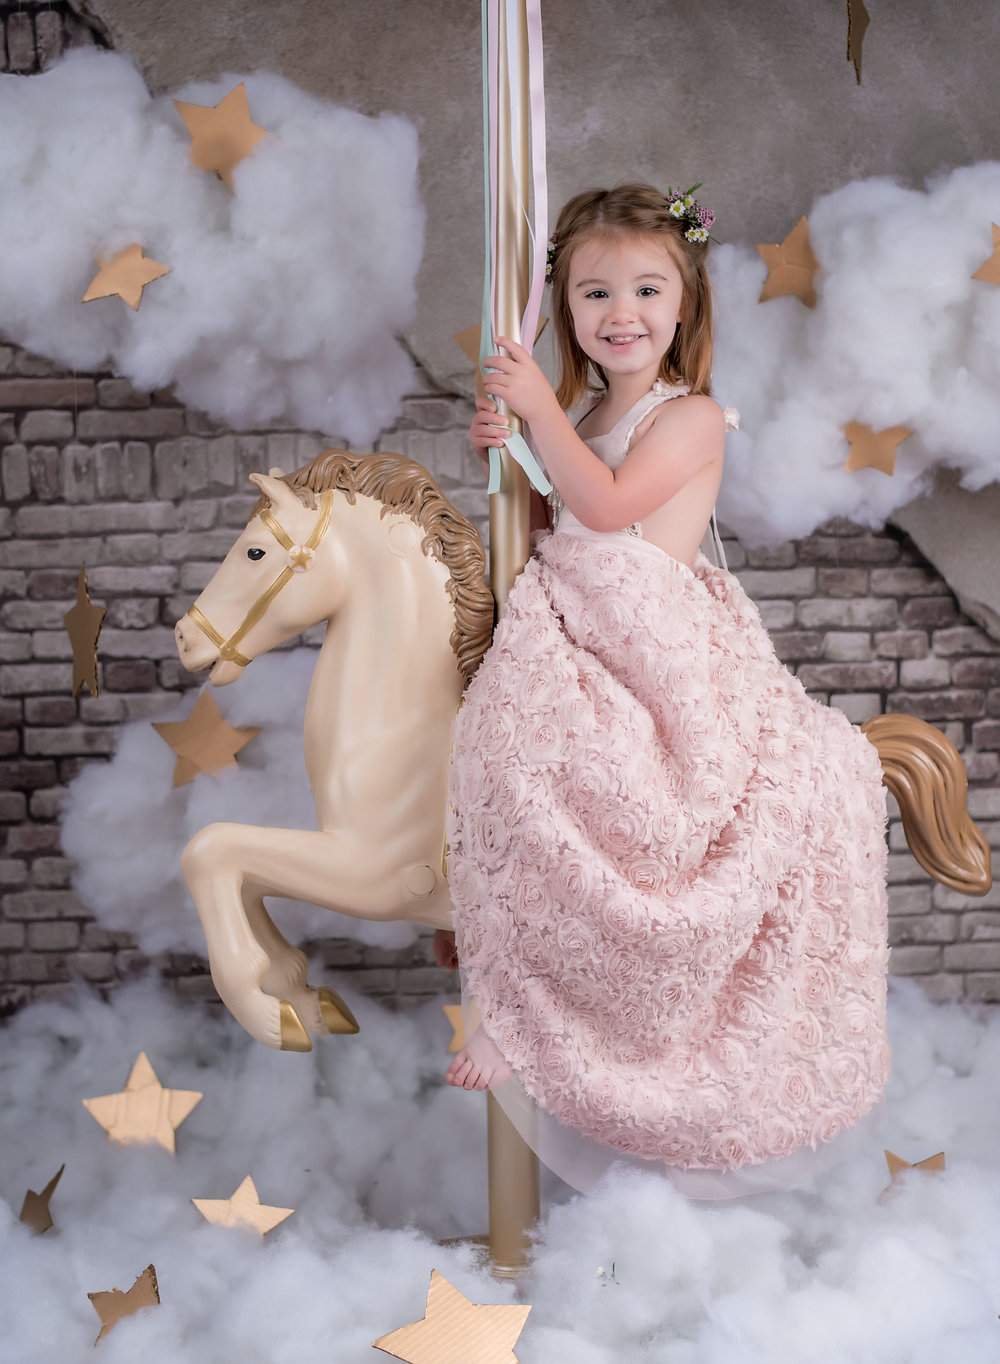 3 year old Little girl in pink rose princess dress on Carousel horse with brick background and clouds, fantasy magical setting